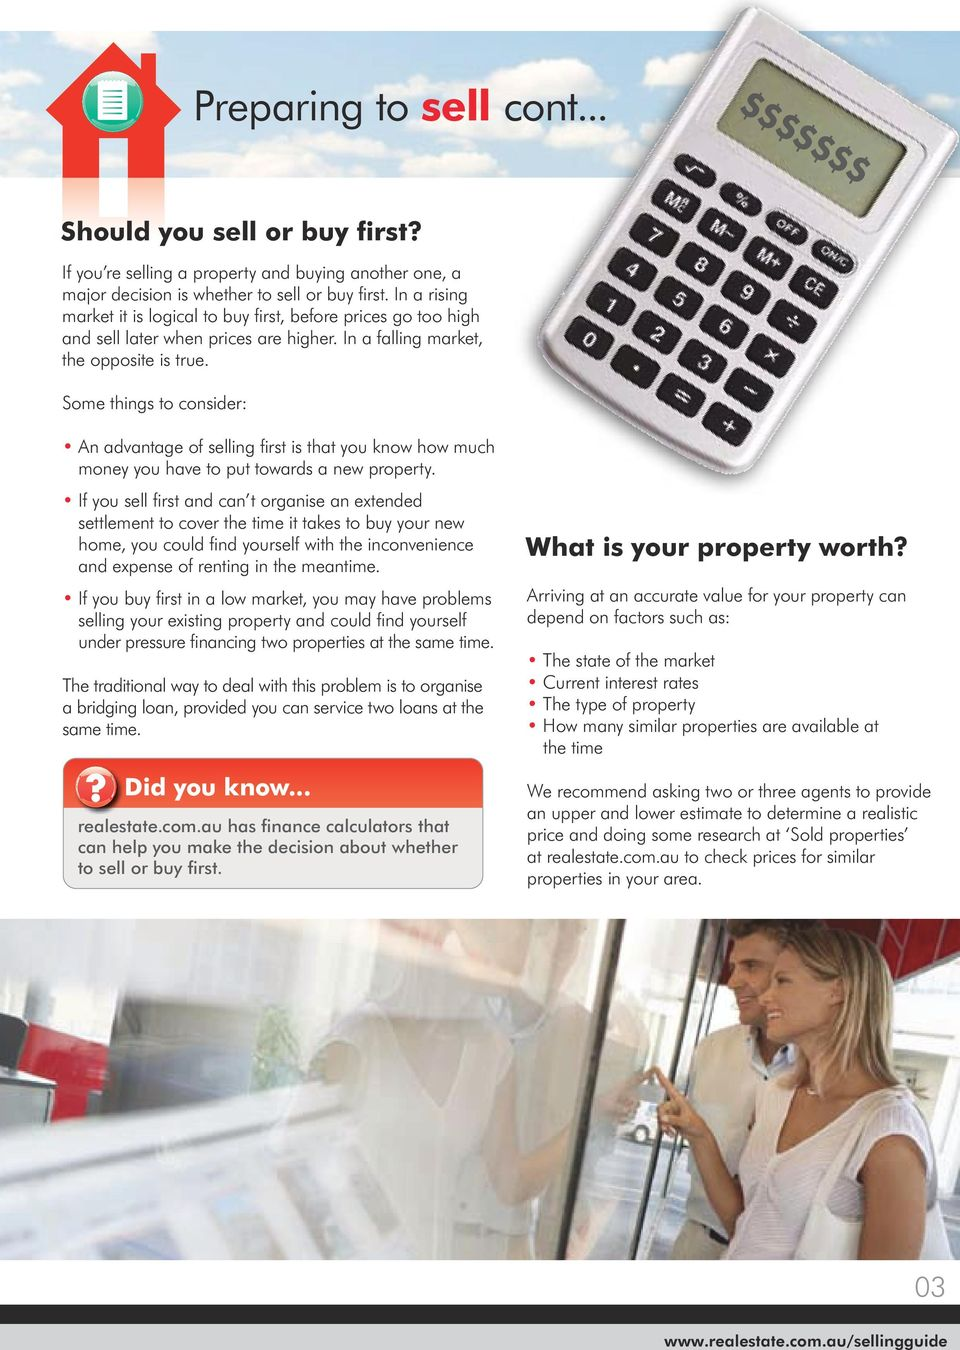 Some things to consider: An advantage of selling first is that you know how much money you have to put towards a new property.